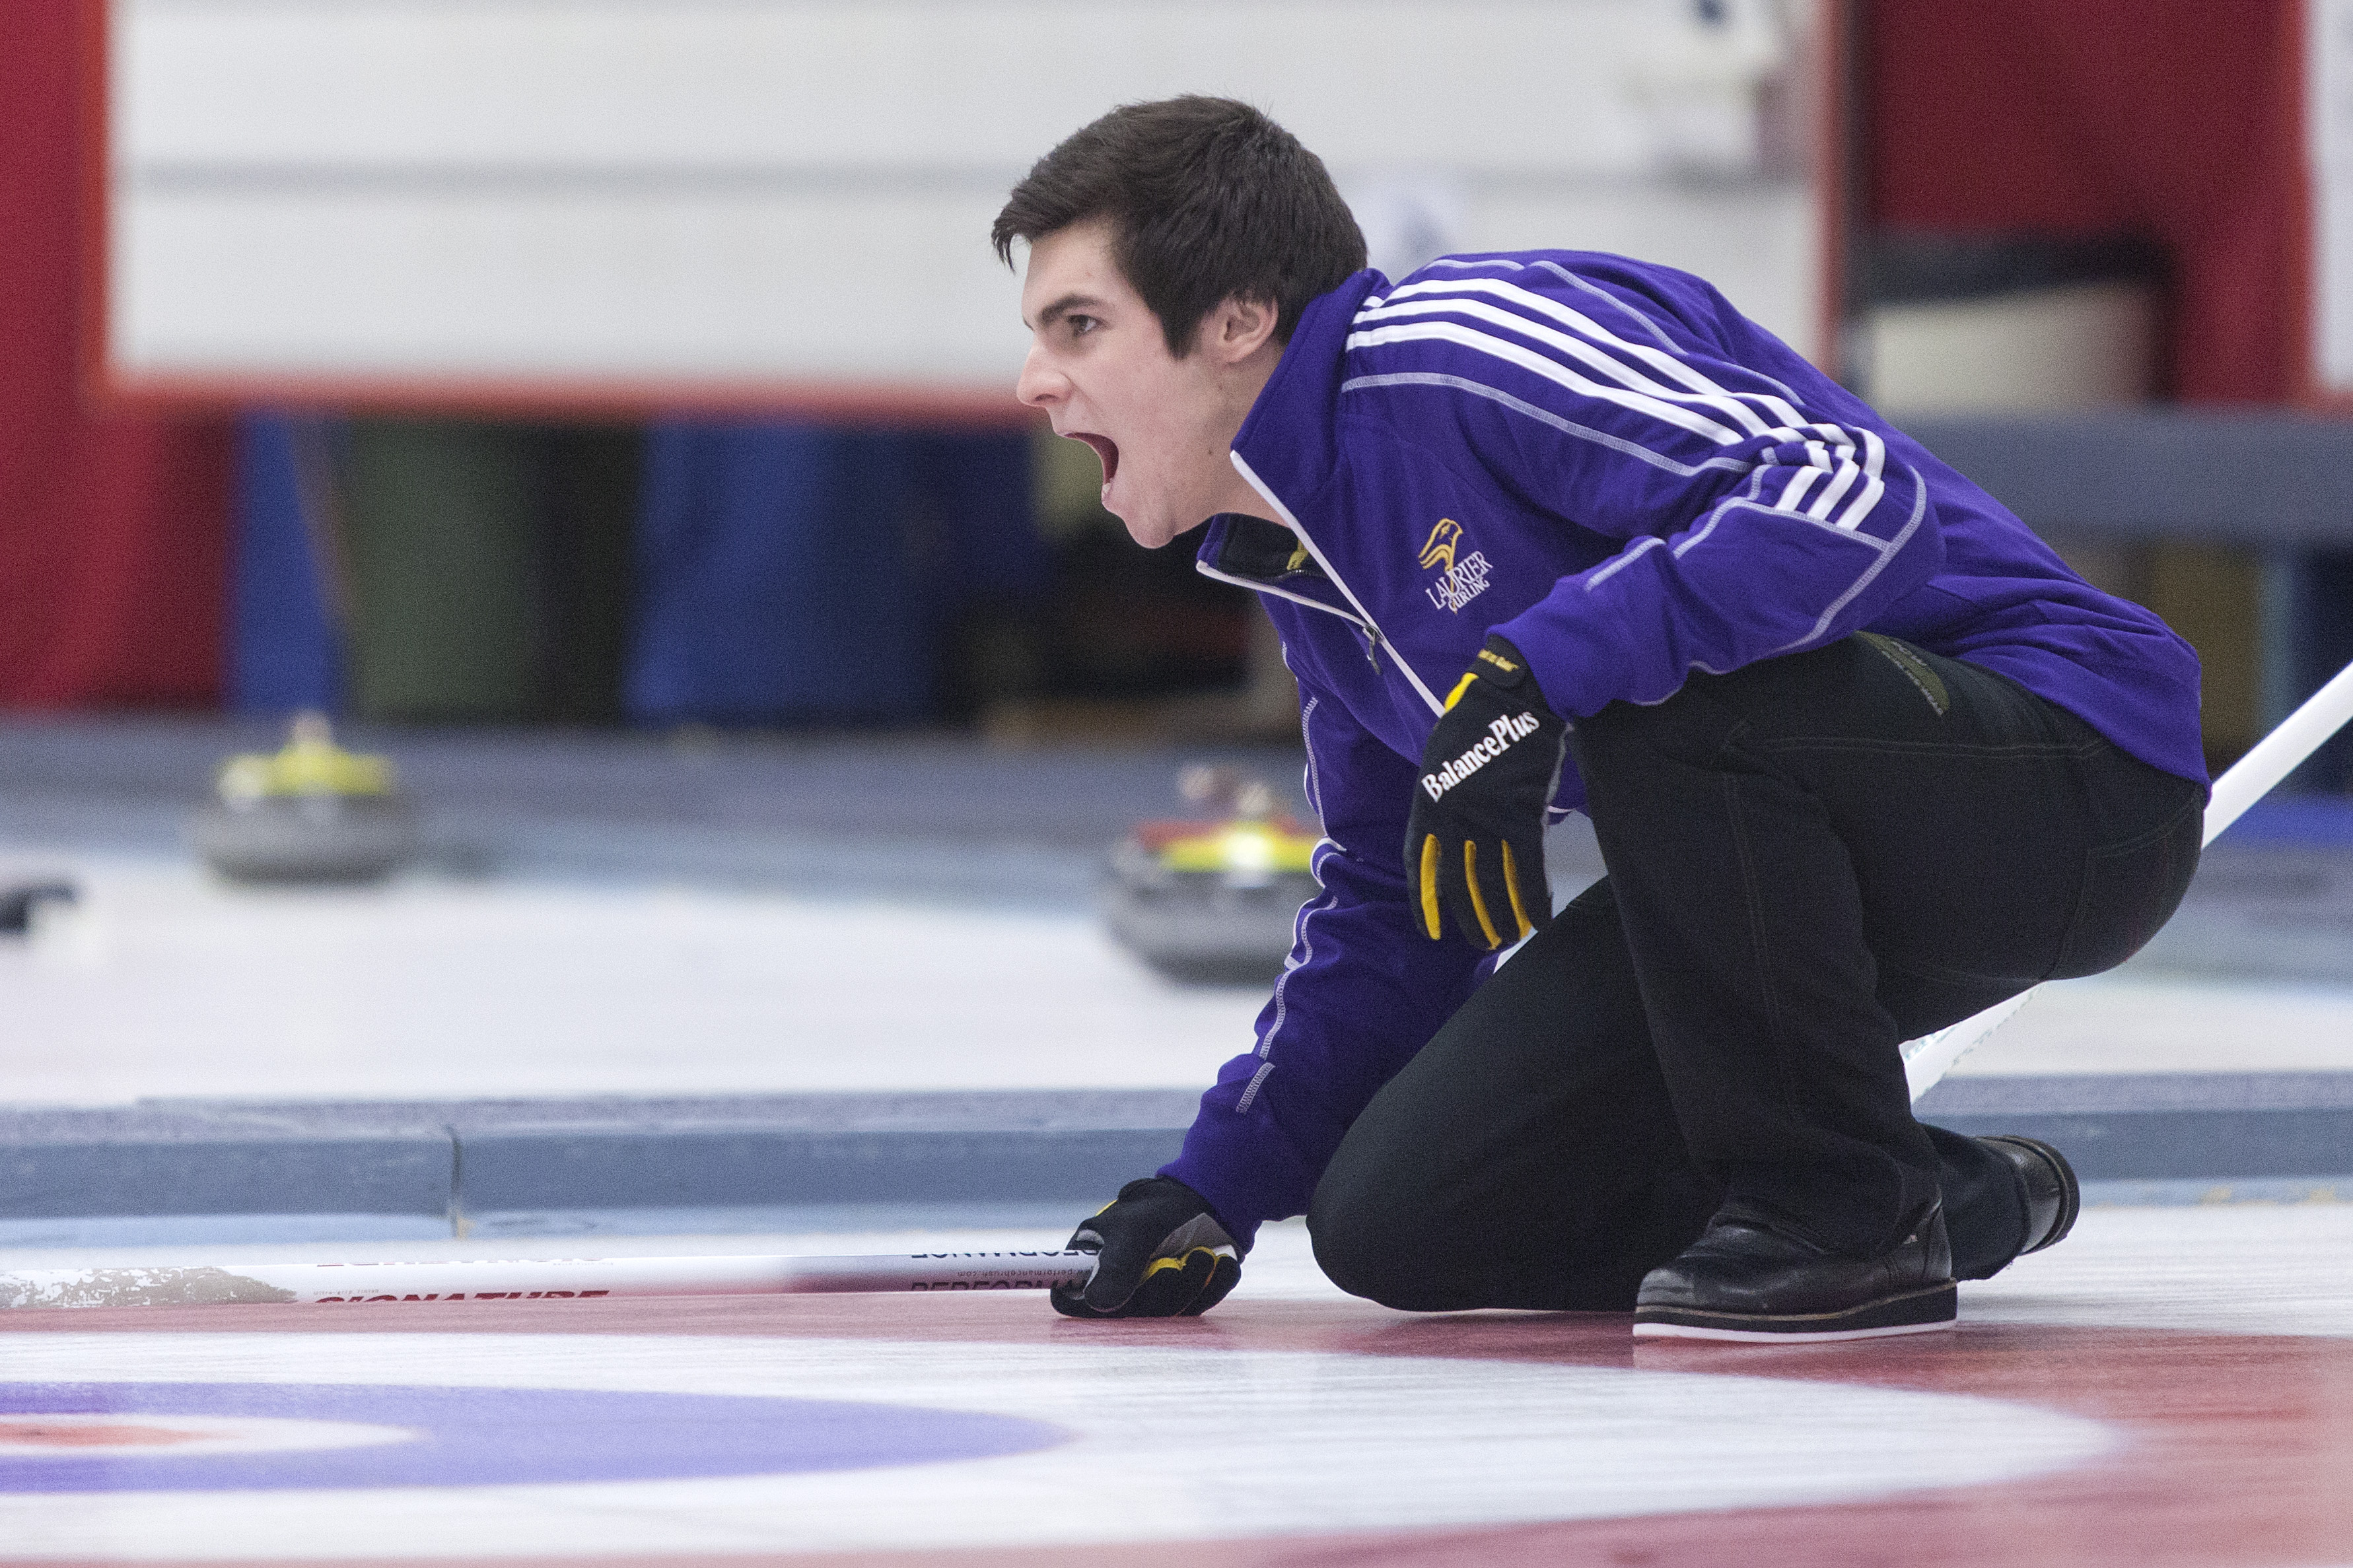 Silver at nationals for men's curling